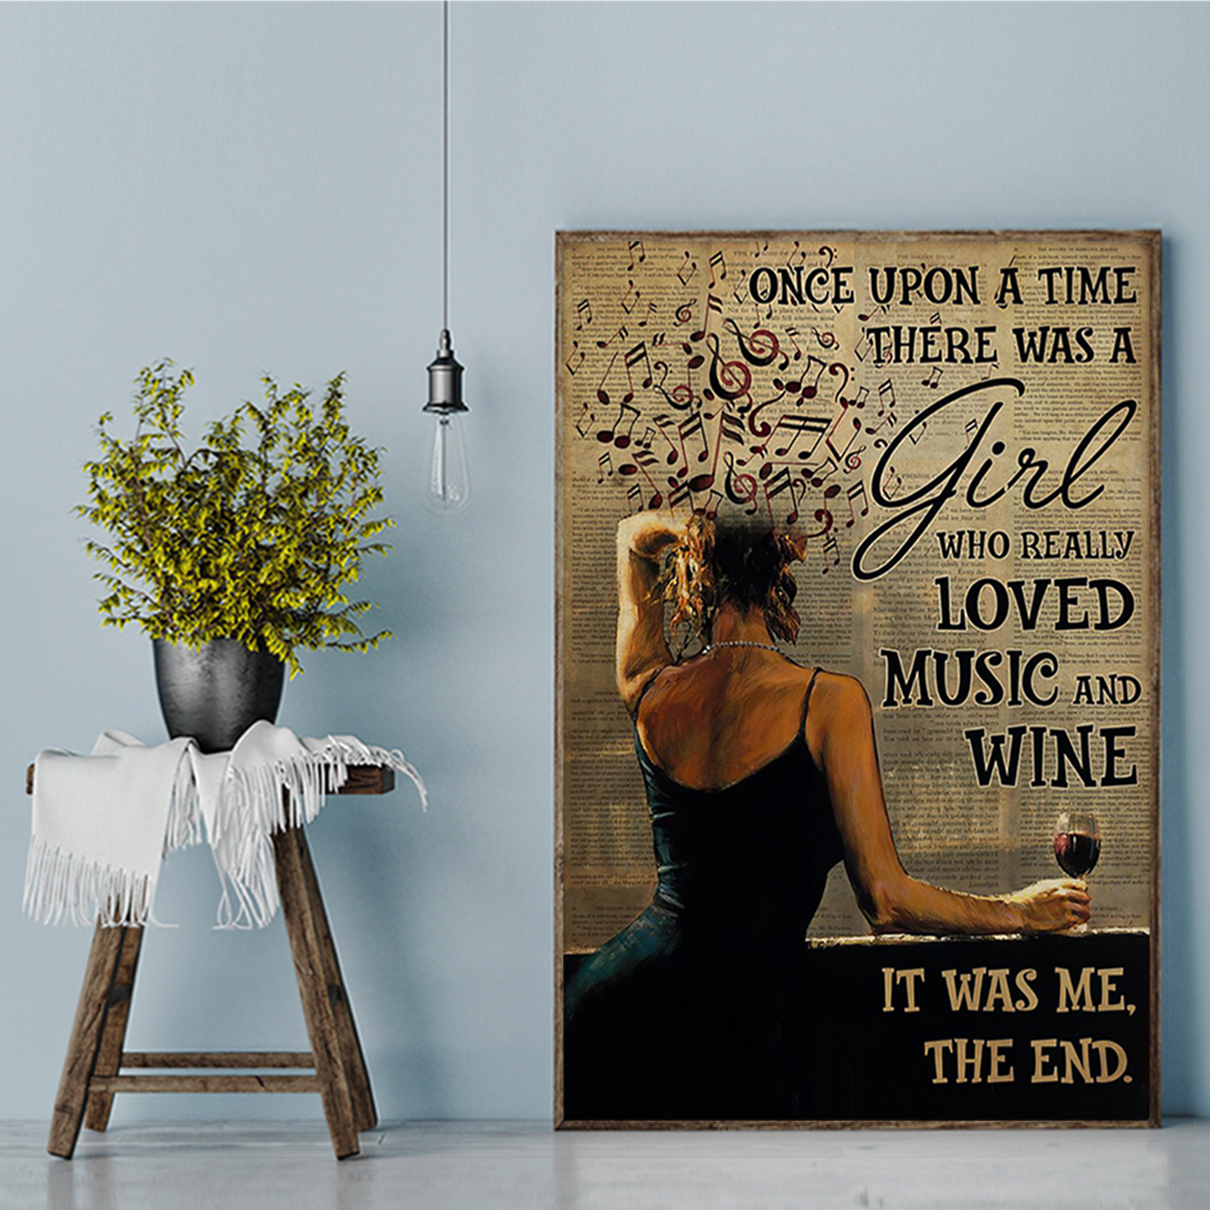 Once upon a time there was a girl who really loved music and wine poster A1